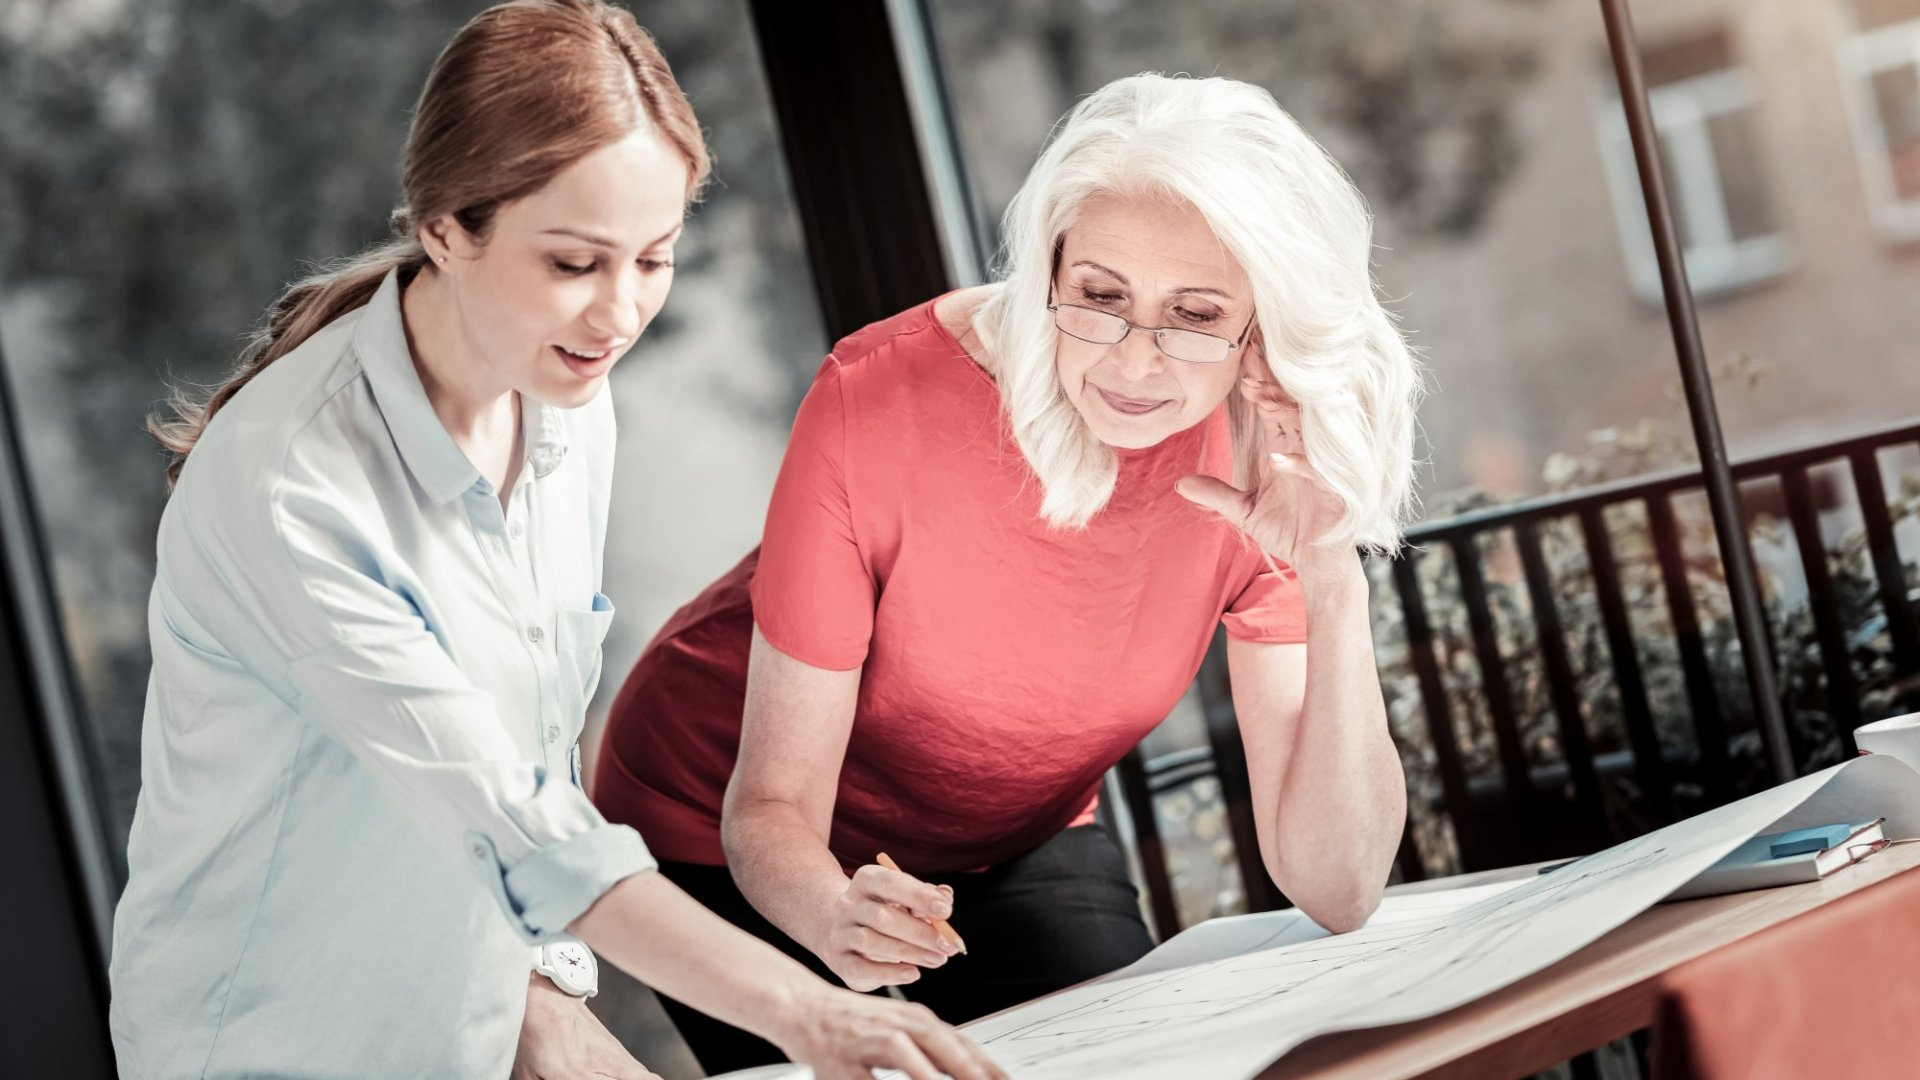 4 KeyGenerational Trends in the Workplace